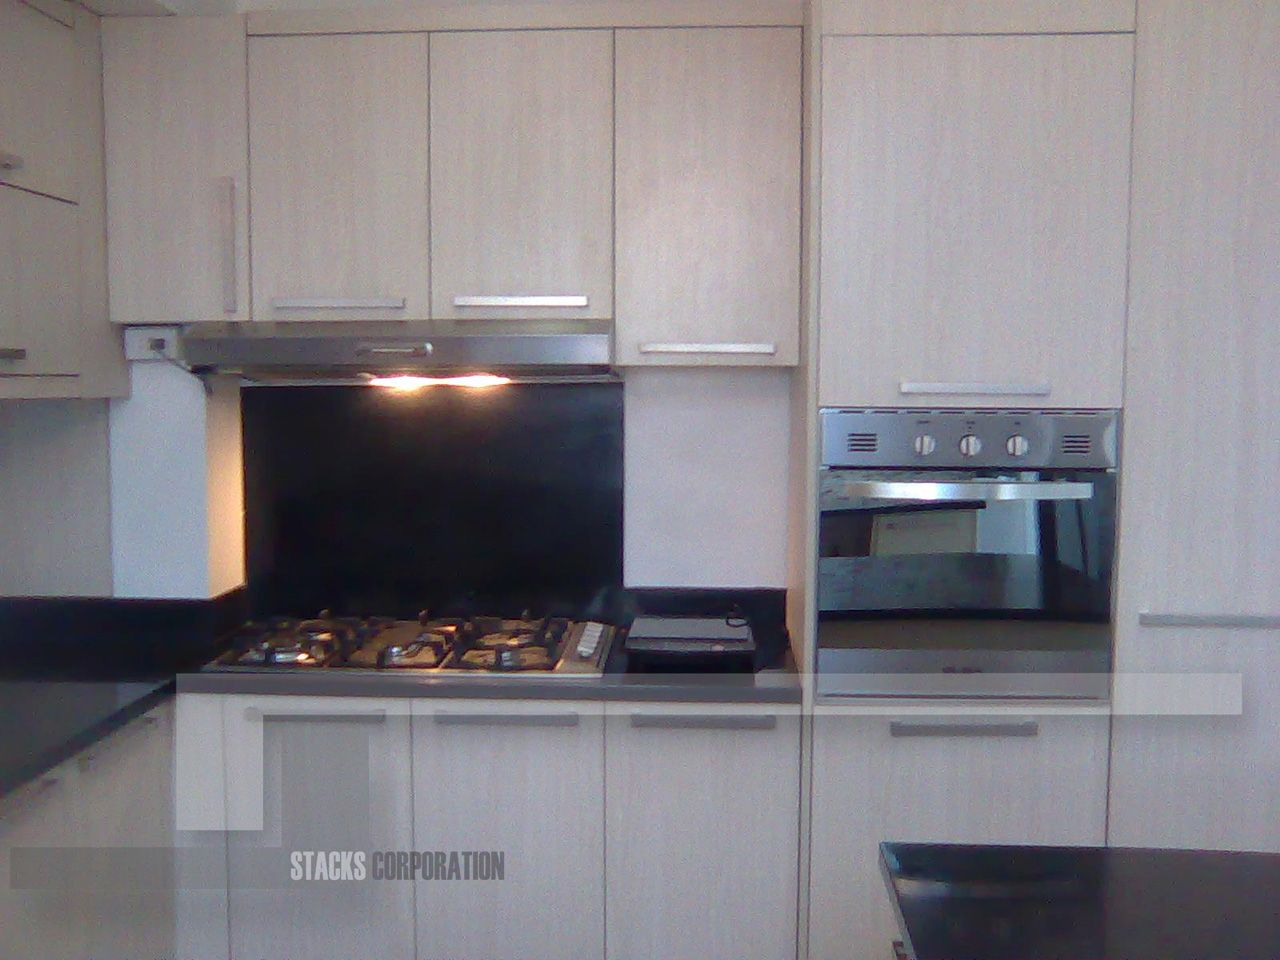 If You Live In A Small Condominium You Do Not Have To Sacrifice Design Just Because You Lack: condo kitchen design philippines